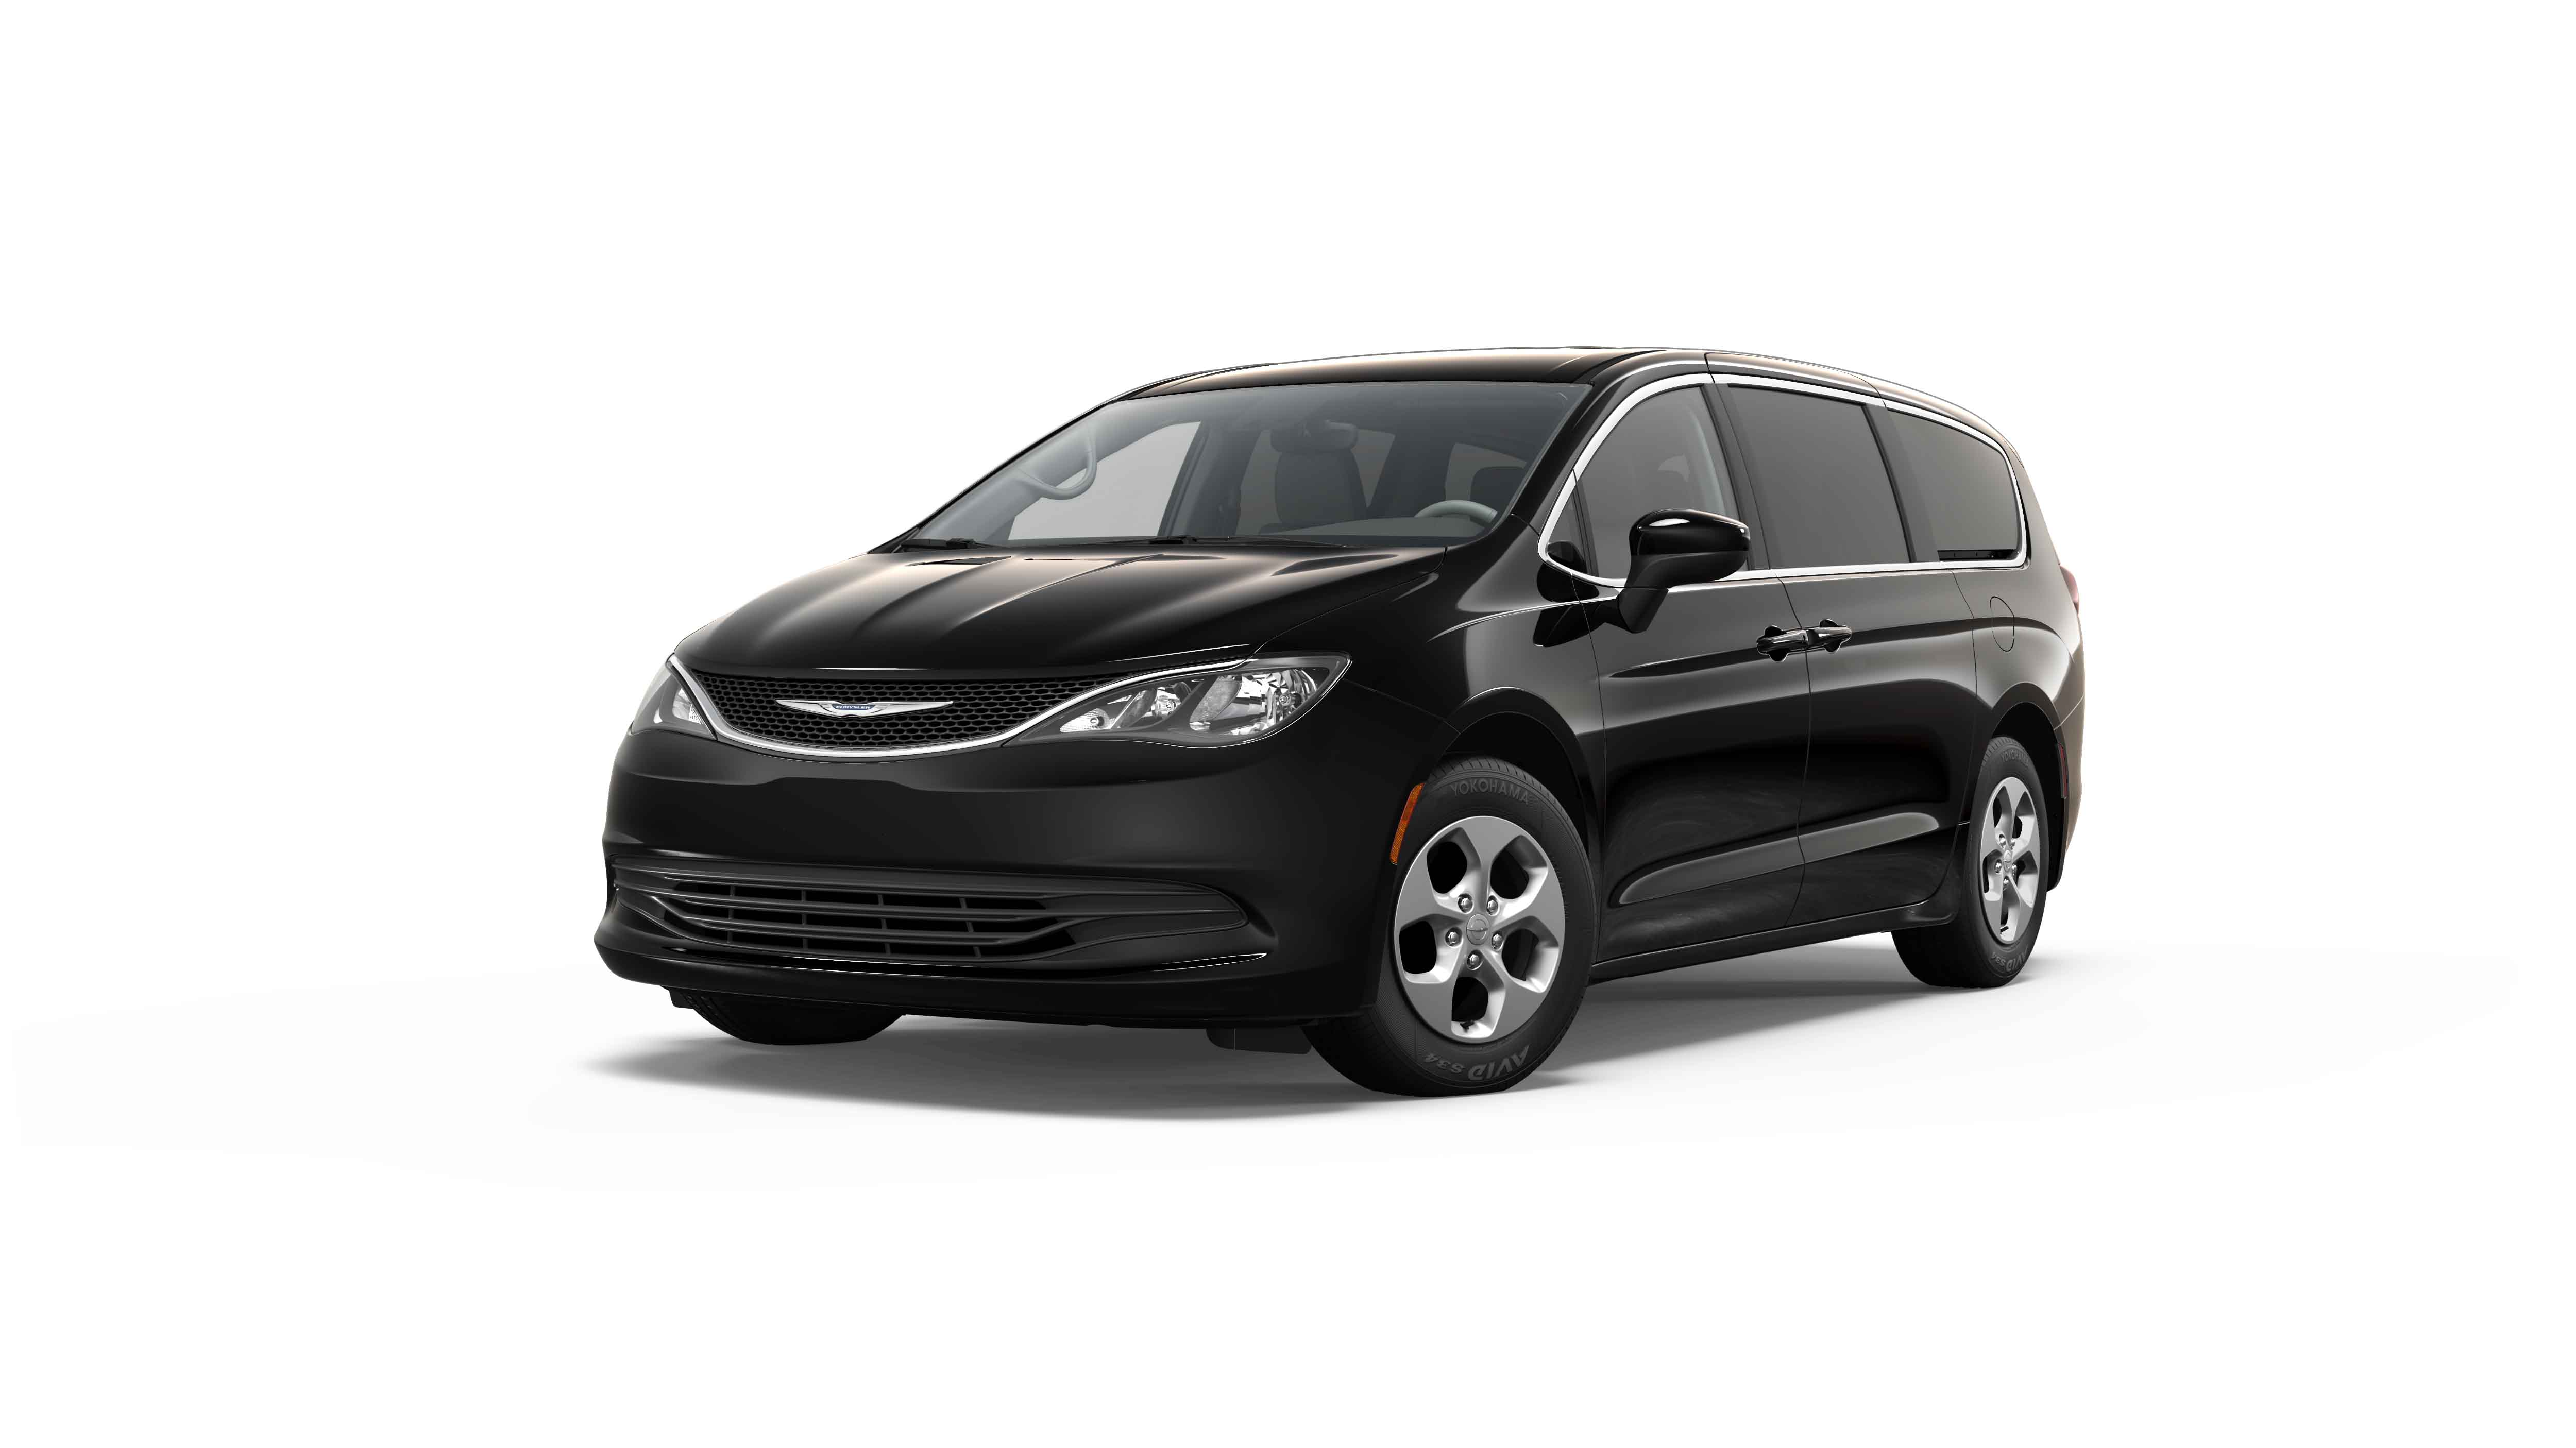 2017 chrysler pacifica lx elder chrysler dodge athens tx. Black Bedroom Furniture Sets. Home Design Ideas